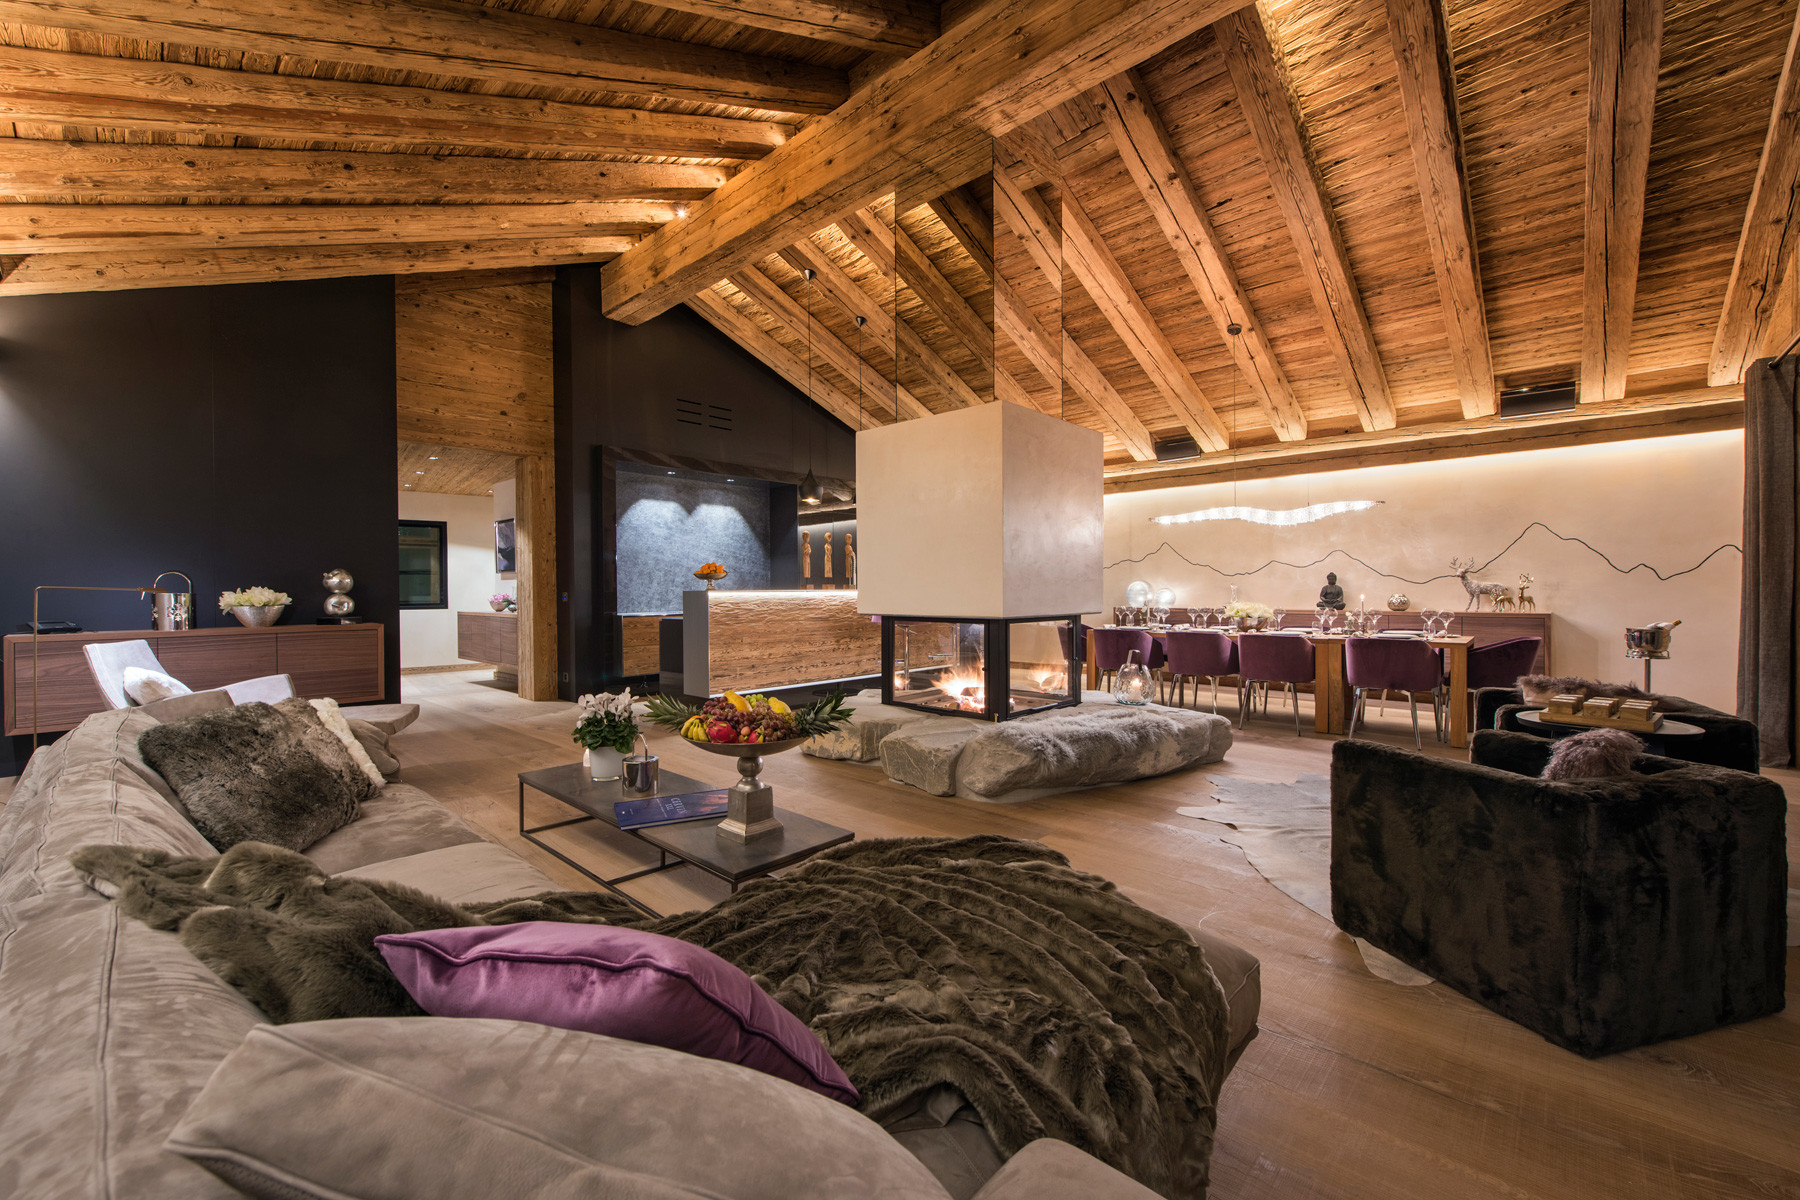 Kings-avenue-zermatt-snow-chalet-sauna-indoor-jacuzzi-private-spa-gym-06-1